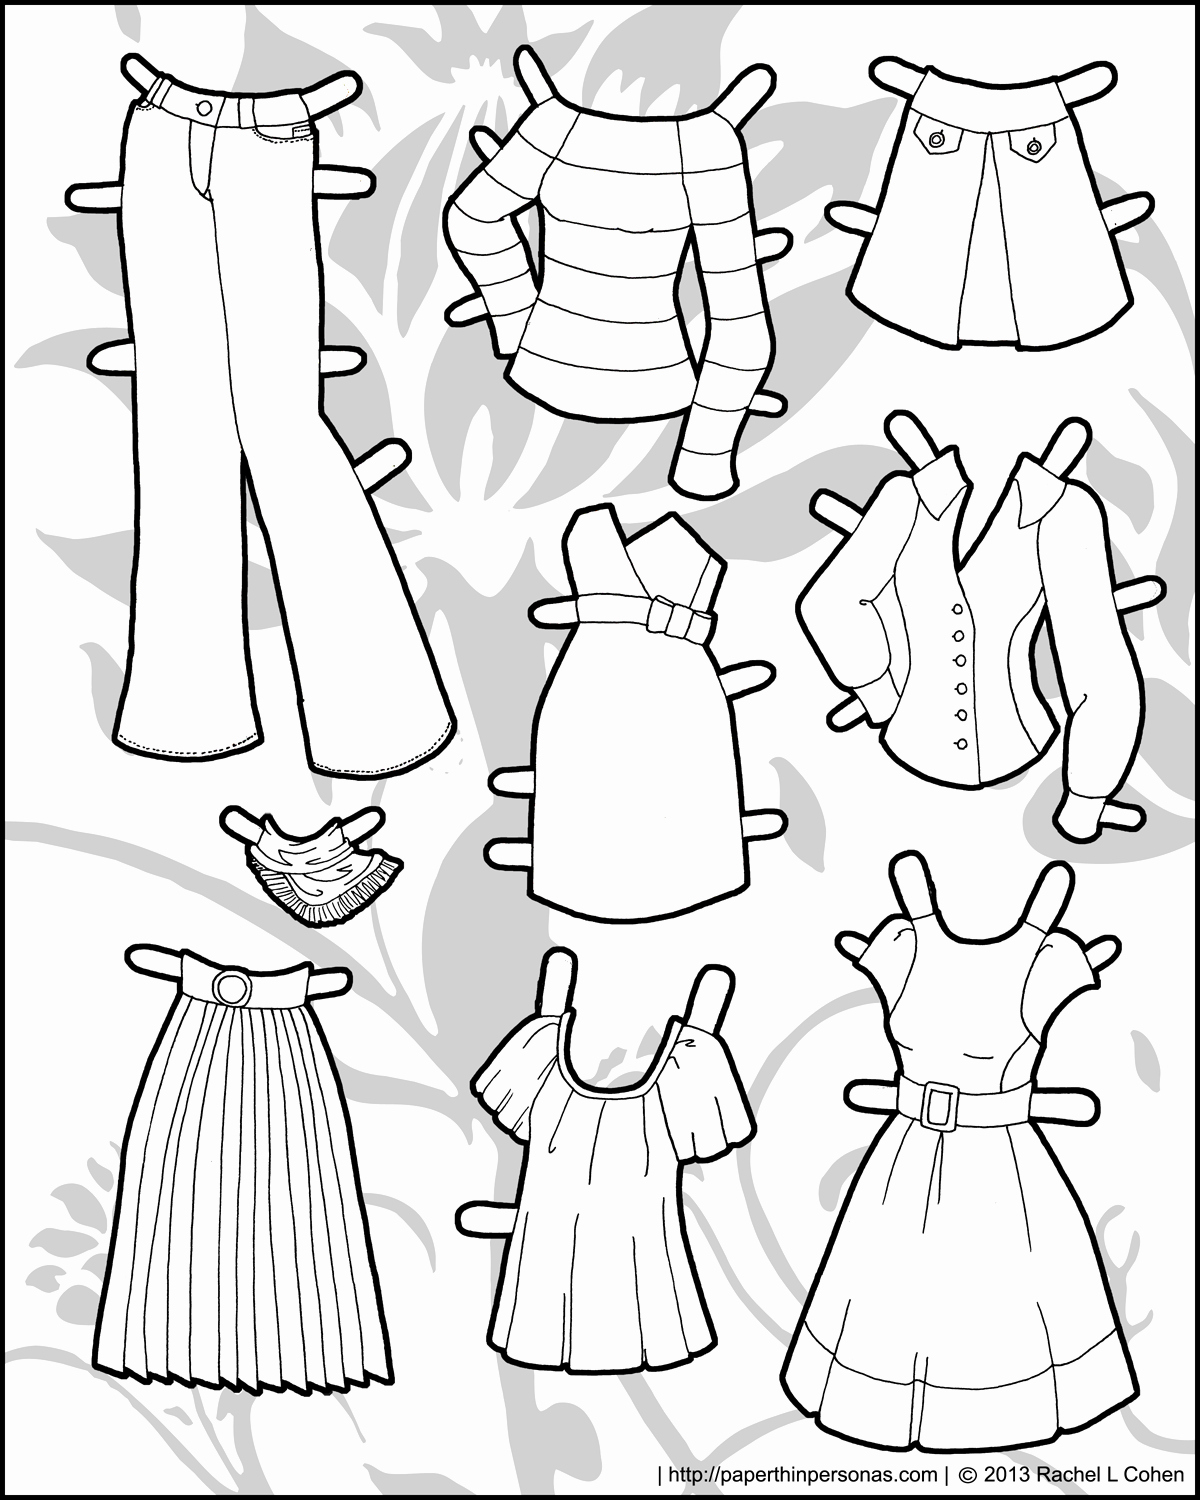 Paper Doll Clothes Template Elegant and yet More Clothing for the Ms Mannequin Printable Paper